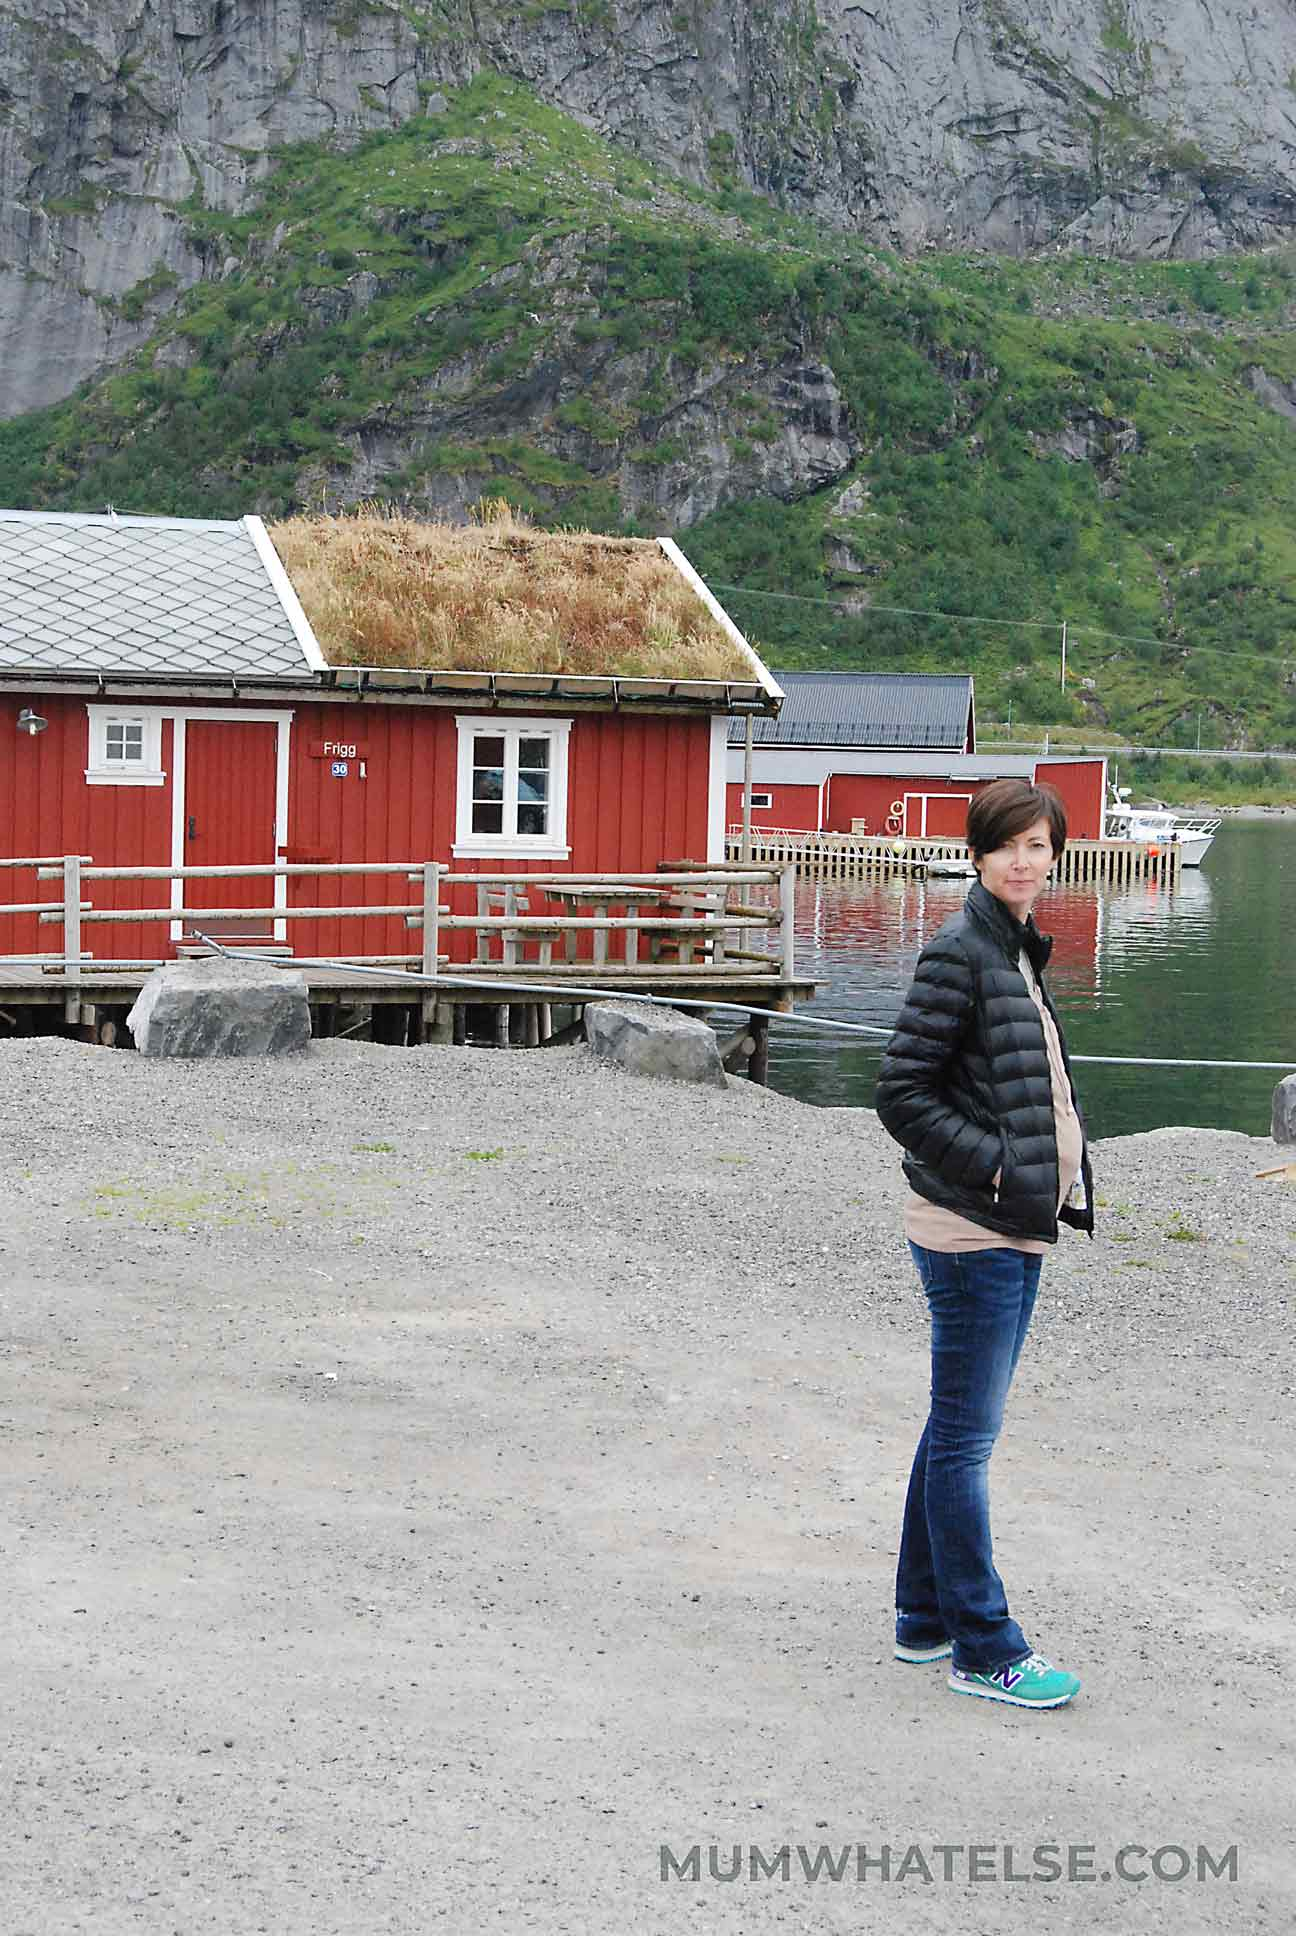 A pregnant woman at Lofoten Islands with red houses as background